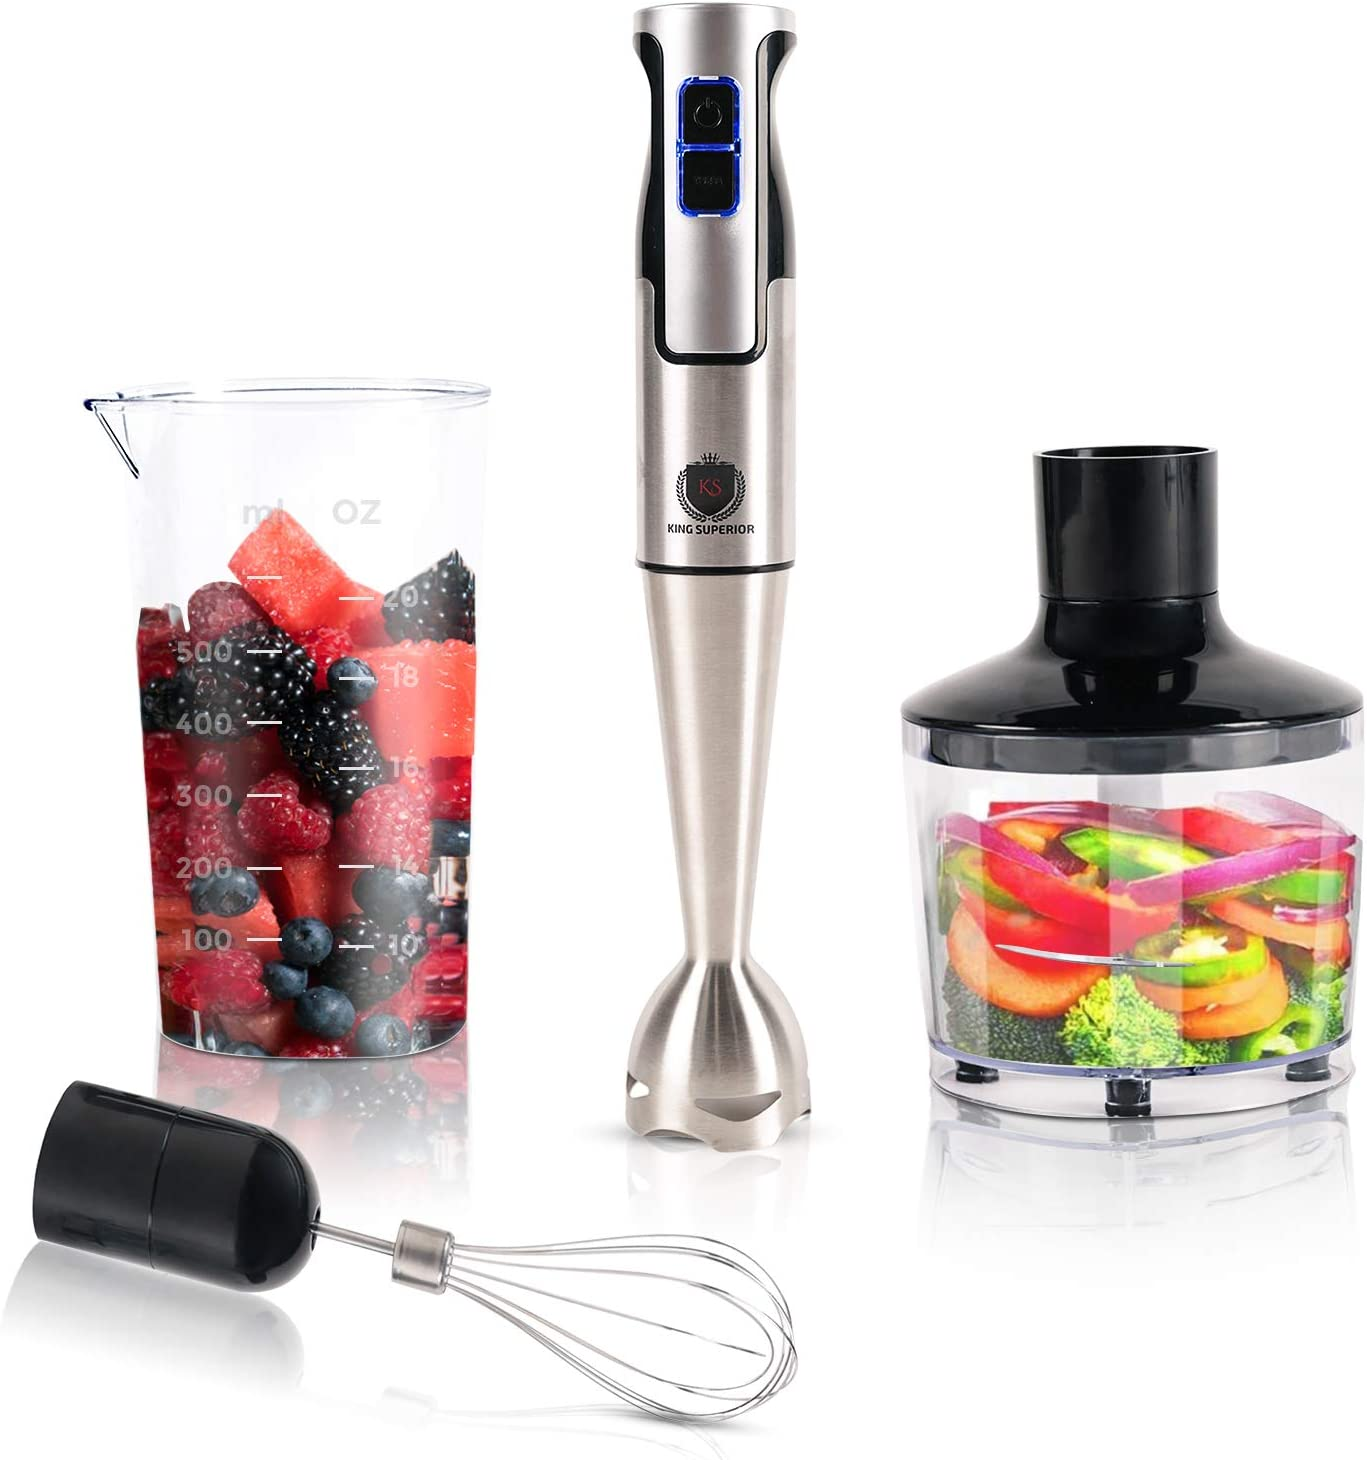 KING SUPERIOR Hand Immersion Blender, Powerful 500-Watt Motor, Stainless Steel Stick, 4-In-1 With 8 Speeds Plus TURBO, 2 Cup Food Processor, 2 1/2 Cup Beaker, BPA-Free